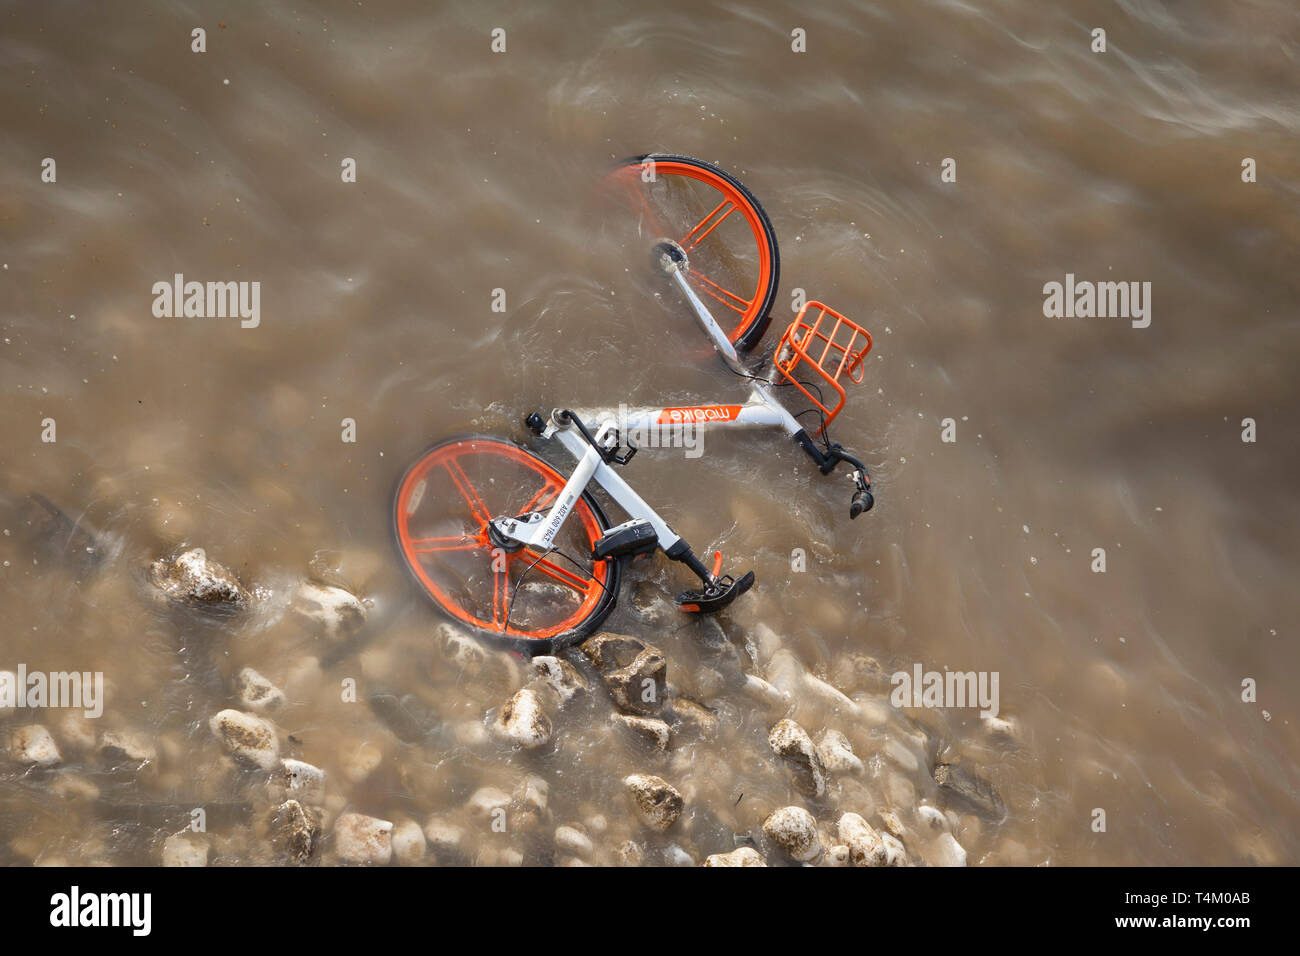 River water laps over a discarded Mobike hire bike on the shoreline thrown into the River Thames by vandals near Westminster Bridge Stock Photo